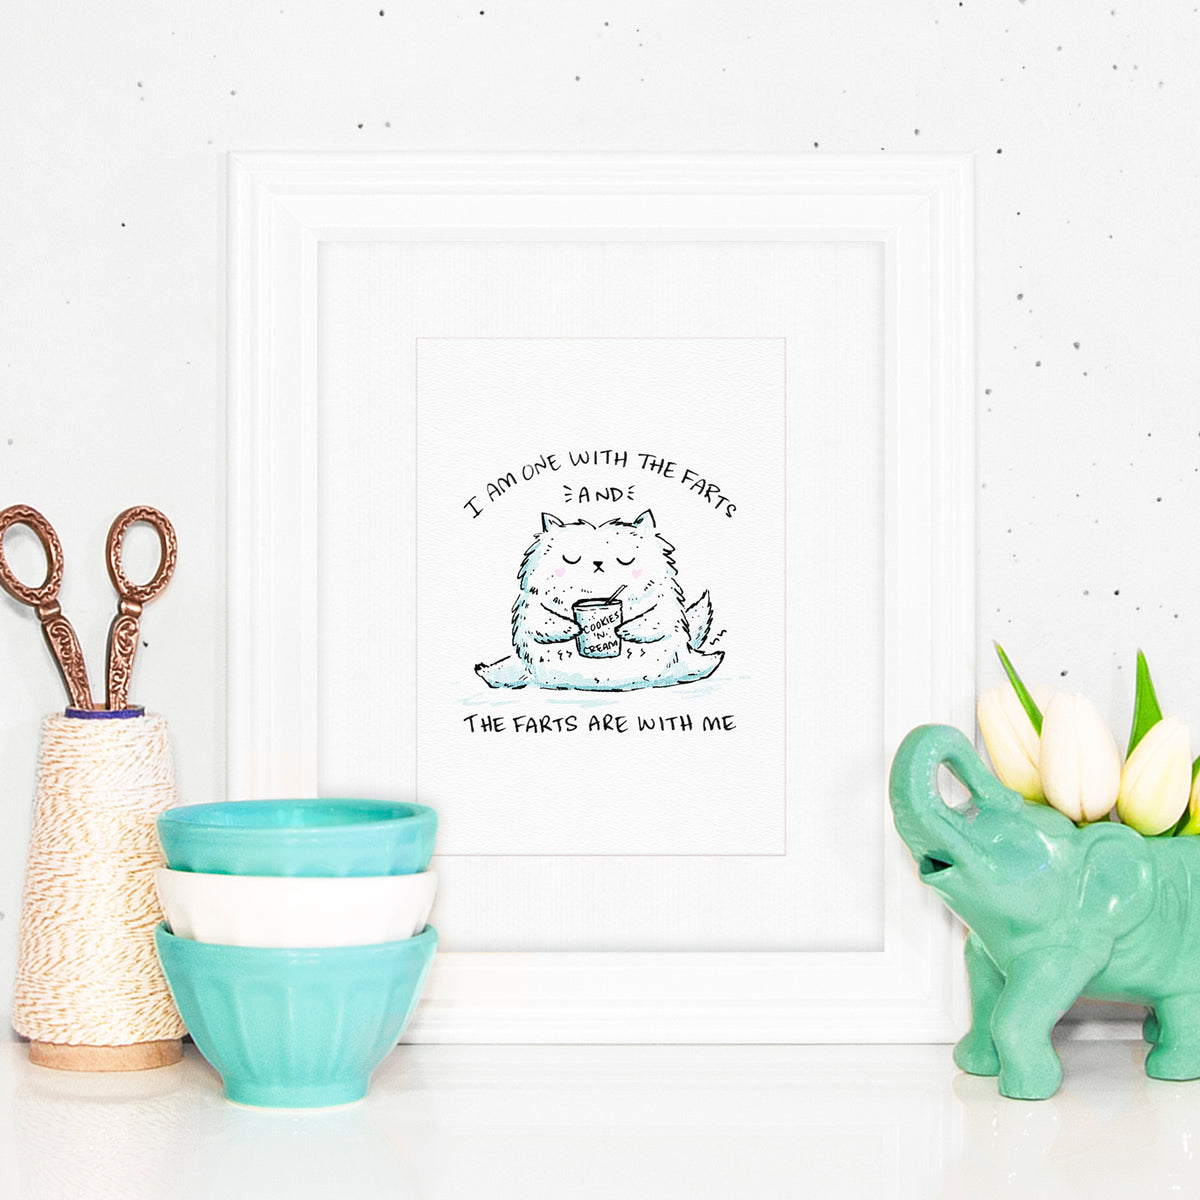 I Am One With The Farts And The Farts Are With Me - Print with a drawing of a cat eating ice cream and farting. Lactard.